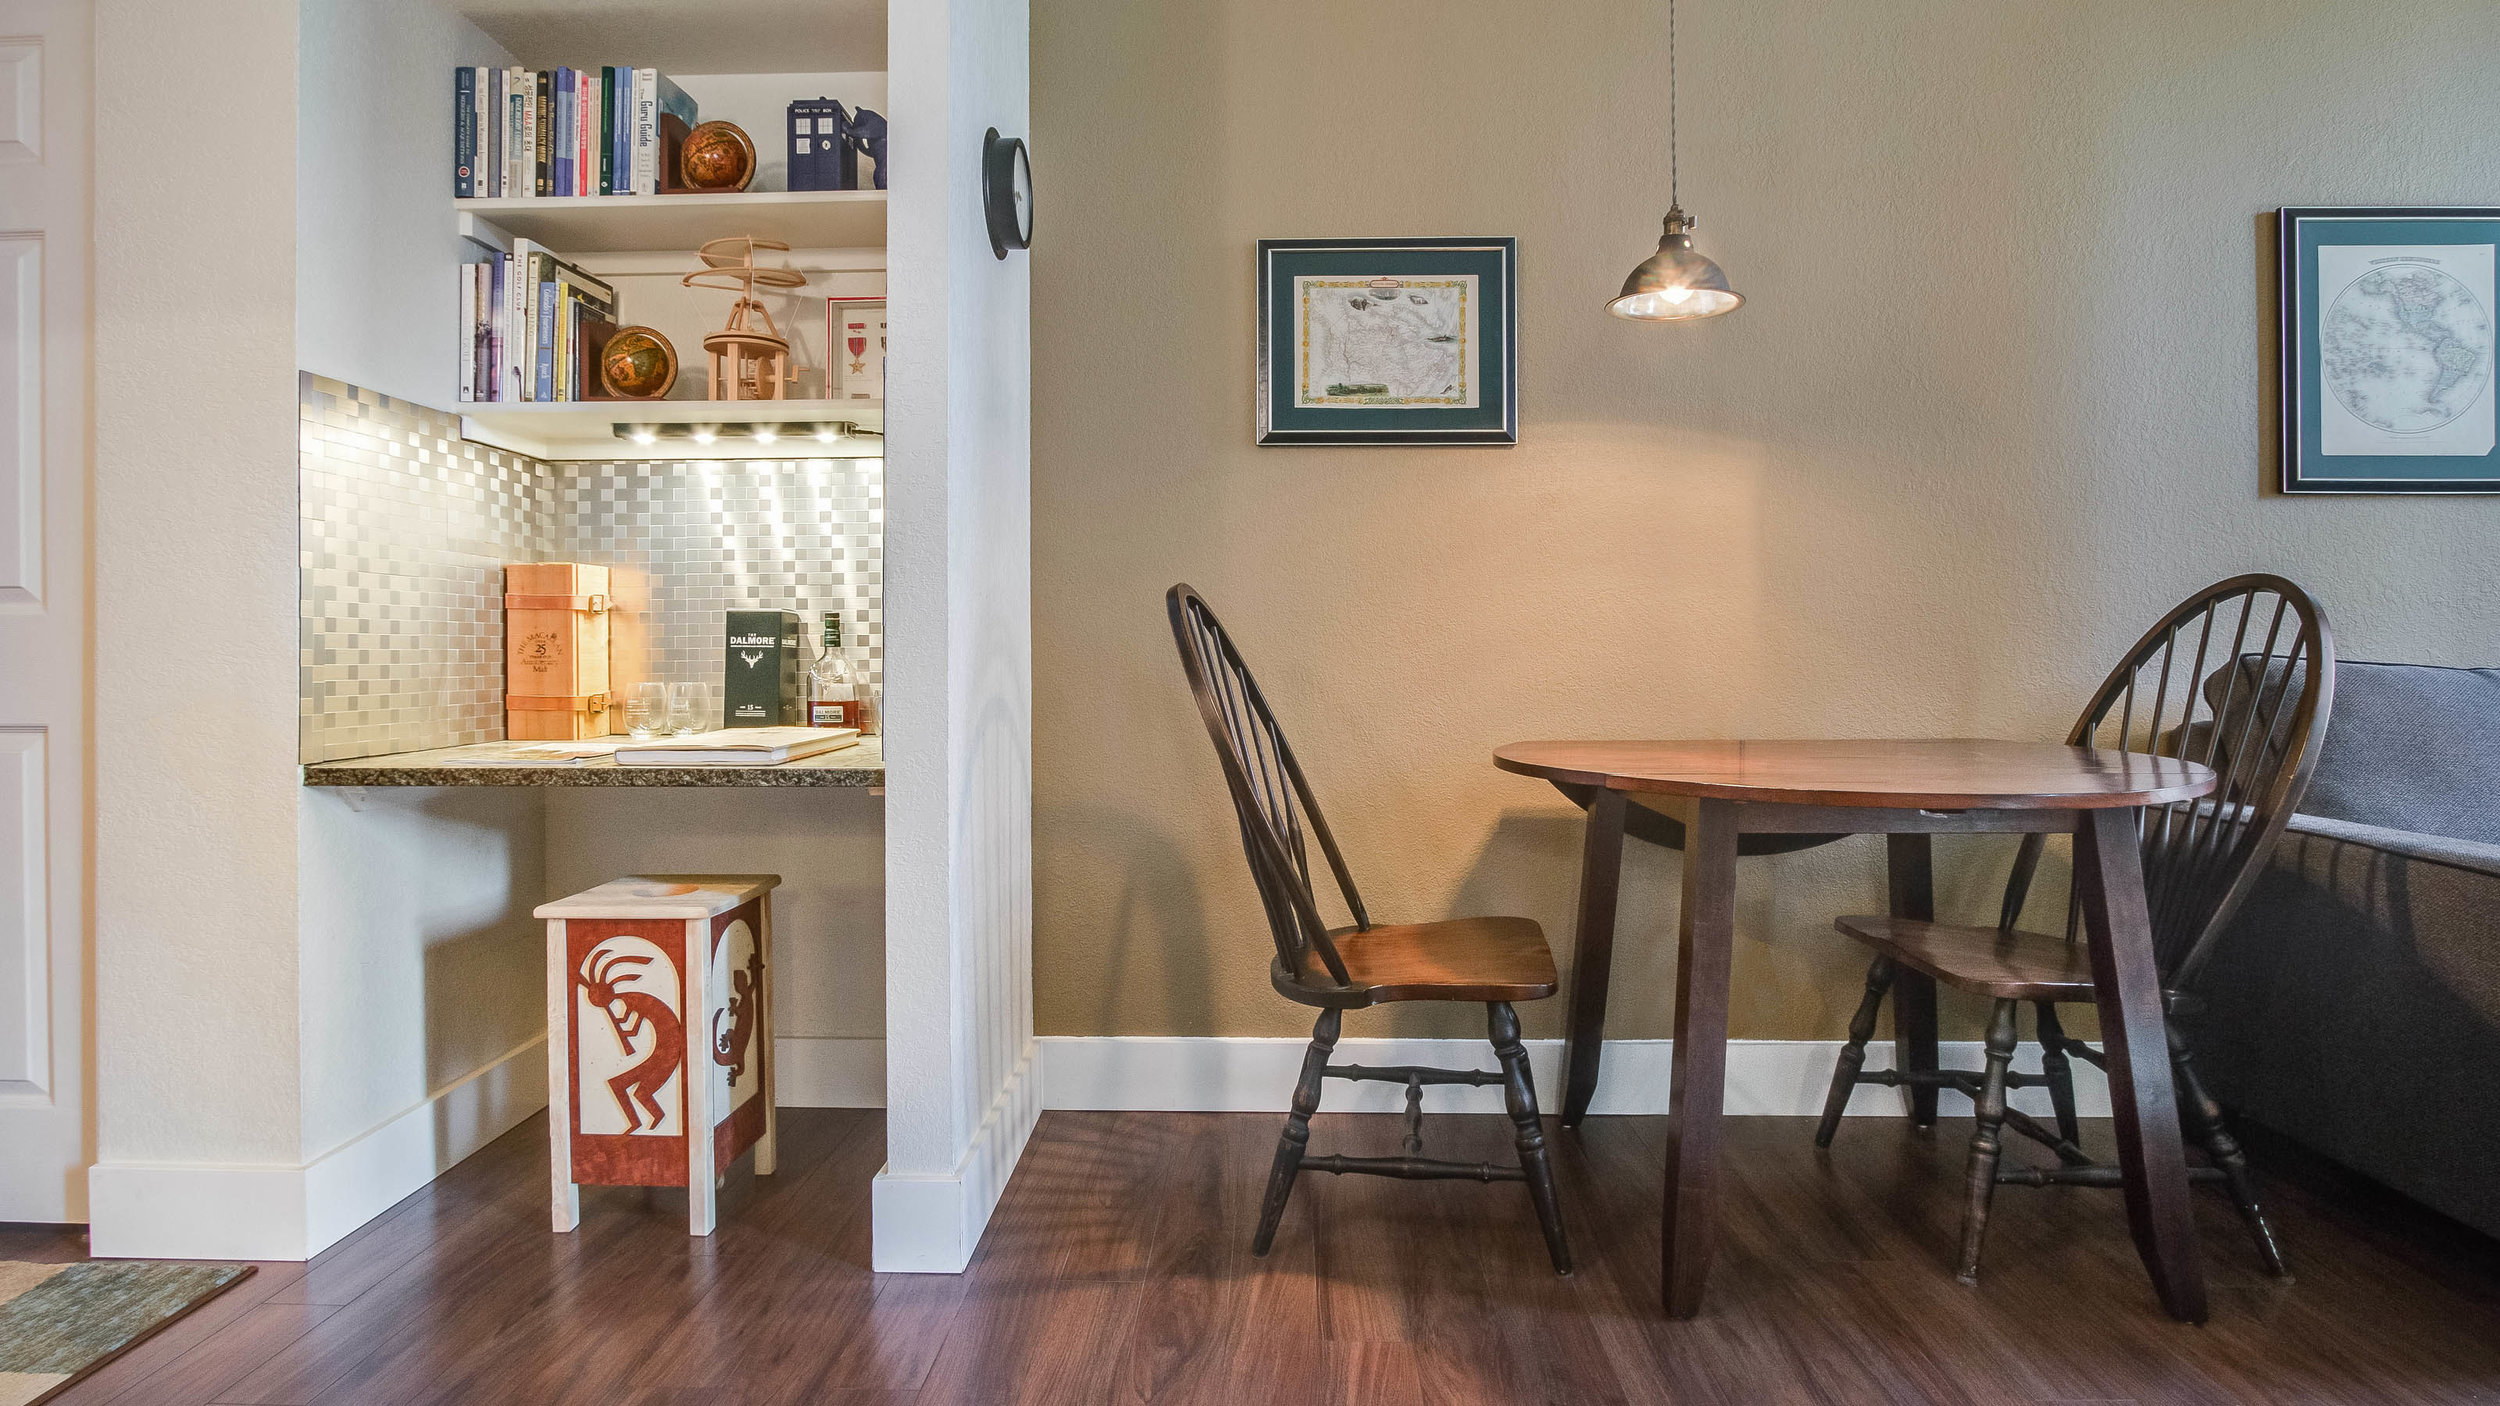 09 44417th206 Dining and Desk (14).jpg